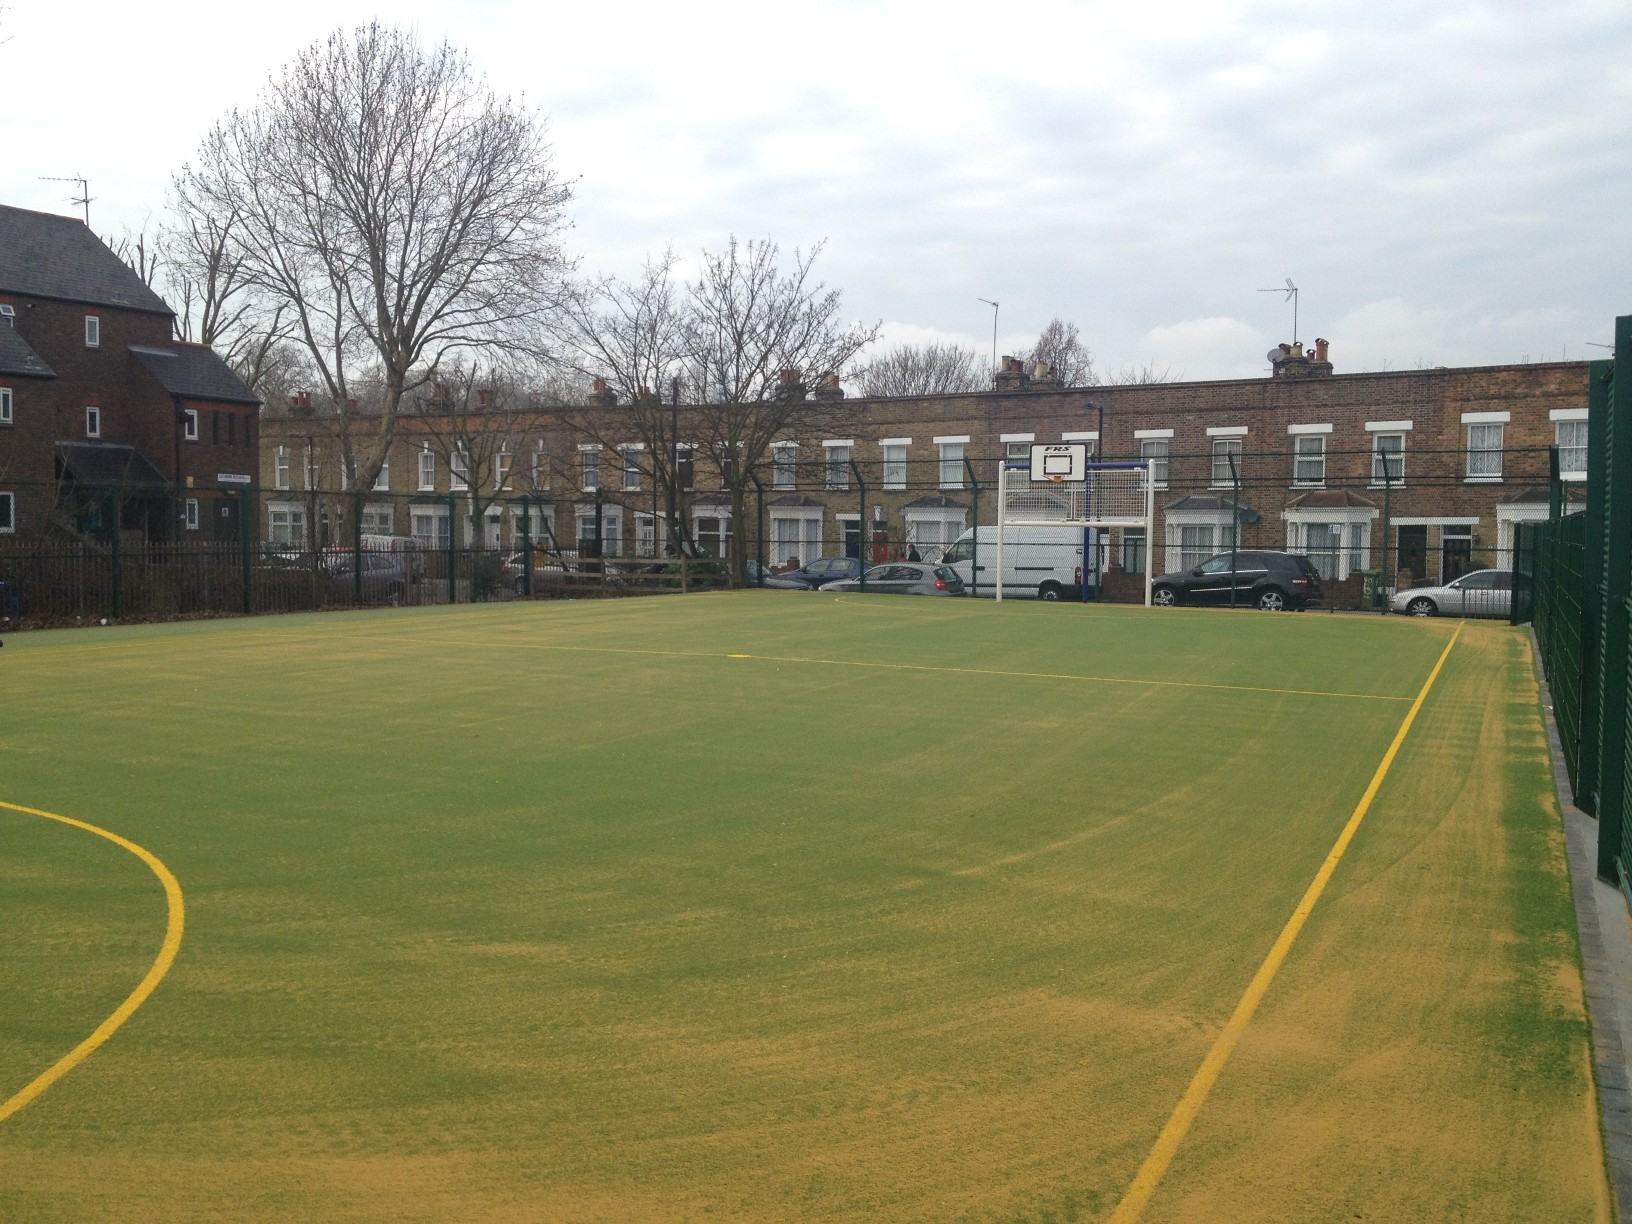 Synthetic turf provides the perfect artificial pitch solution for a variety of sports.